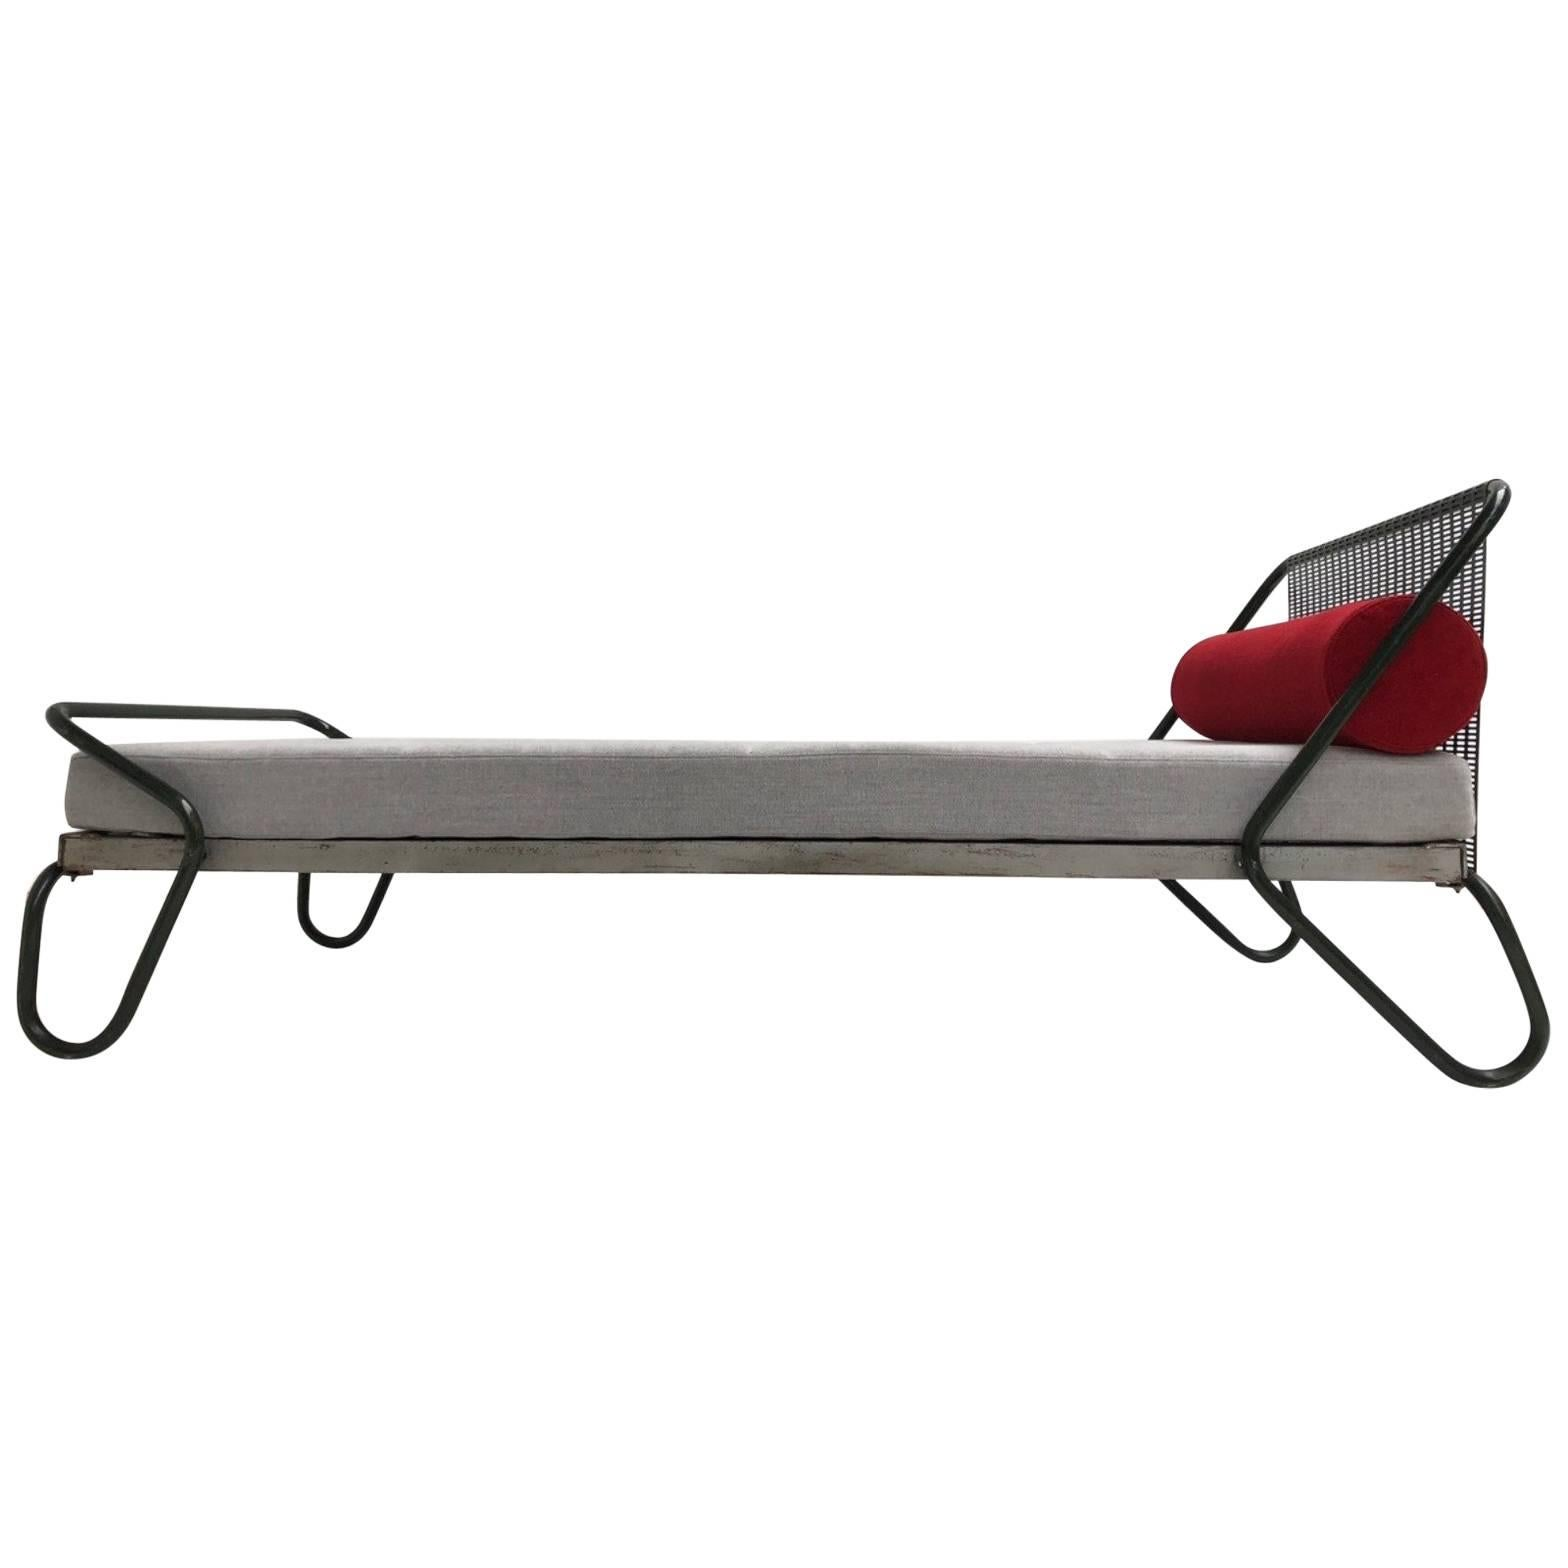 1952 'Miami' Daybed by Jacques Hitier for the Famous 'Antony' Building, Paris